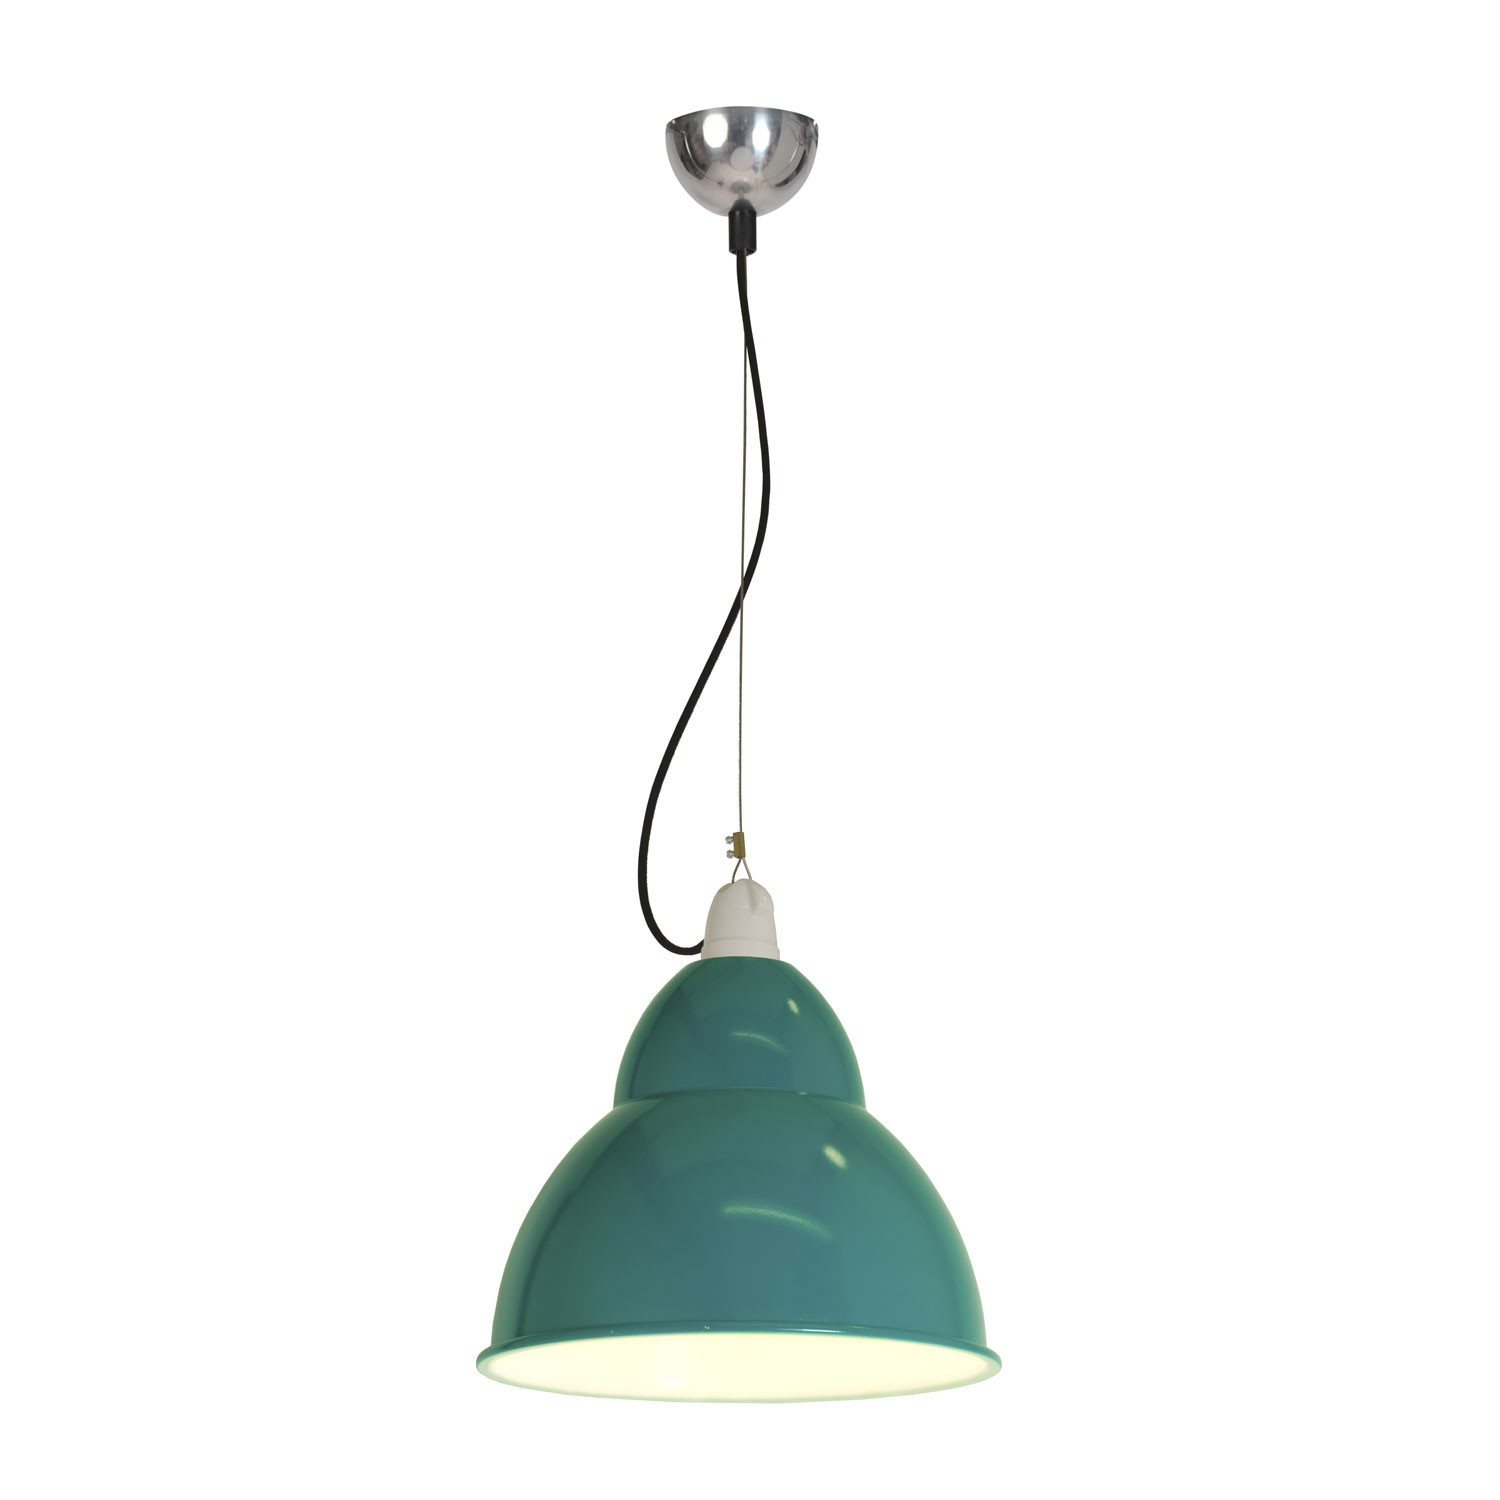 BB1 Pendant Light Aqua Marine